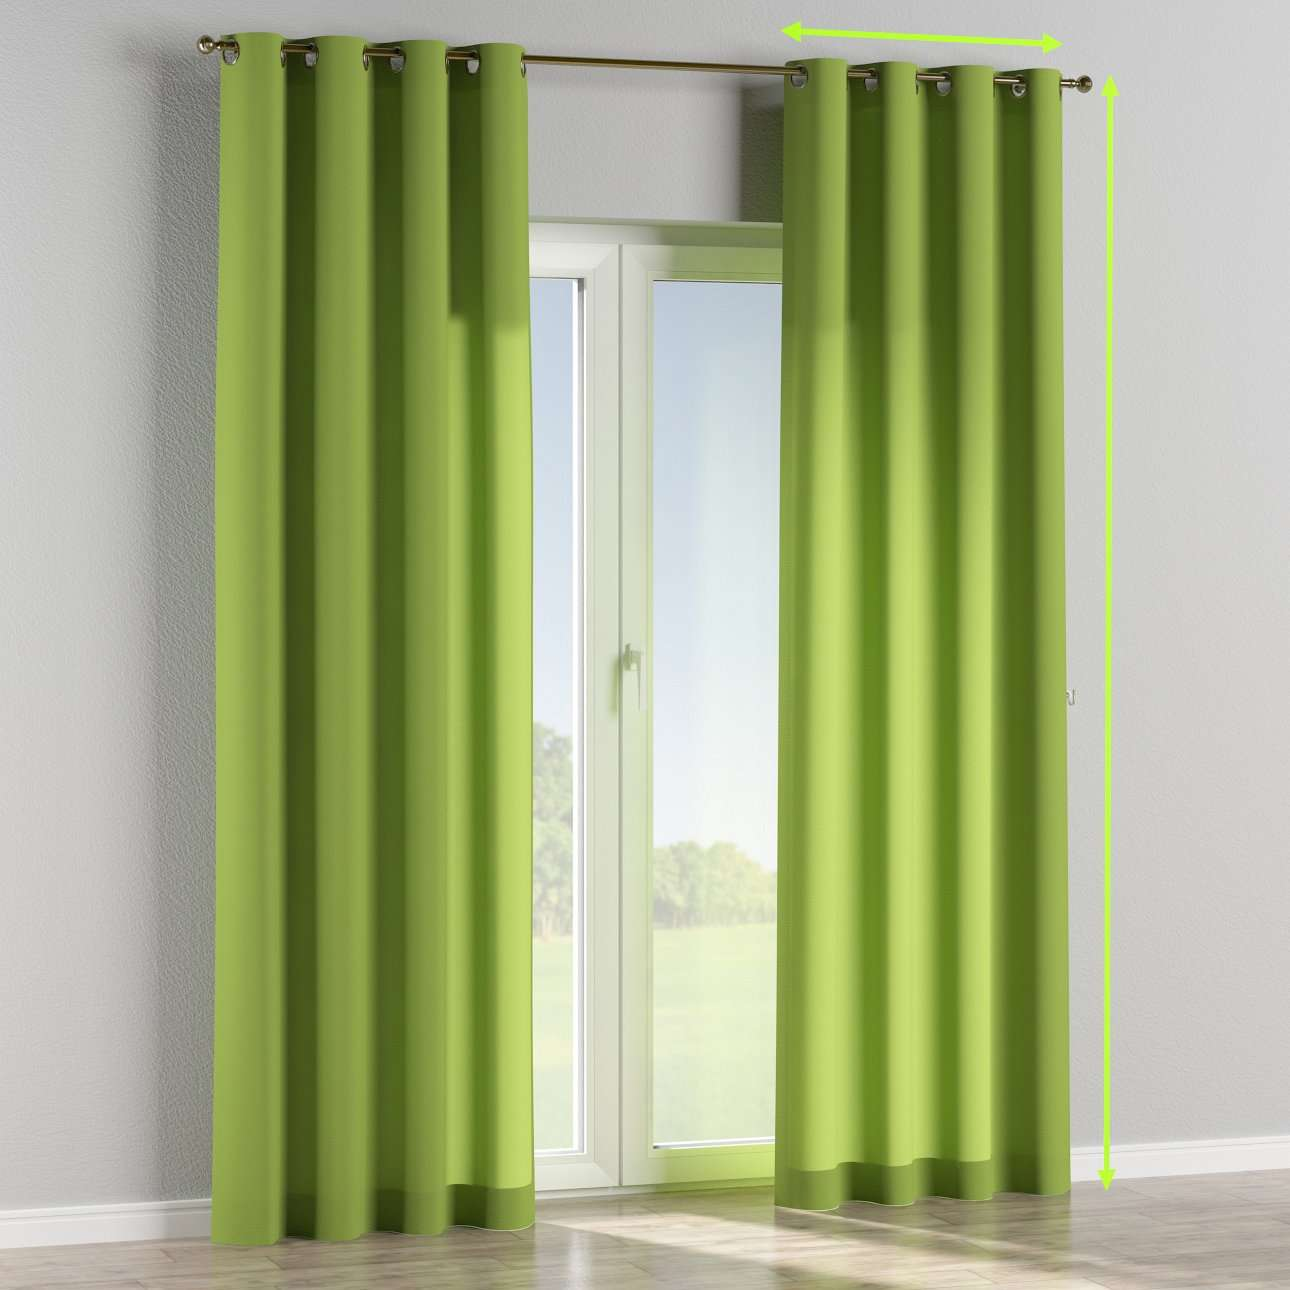 Eyelet lined curtains in collection Quadro, fabric: 136-37